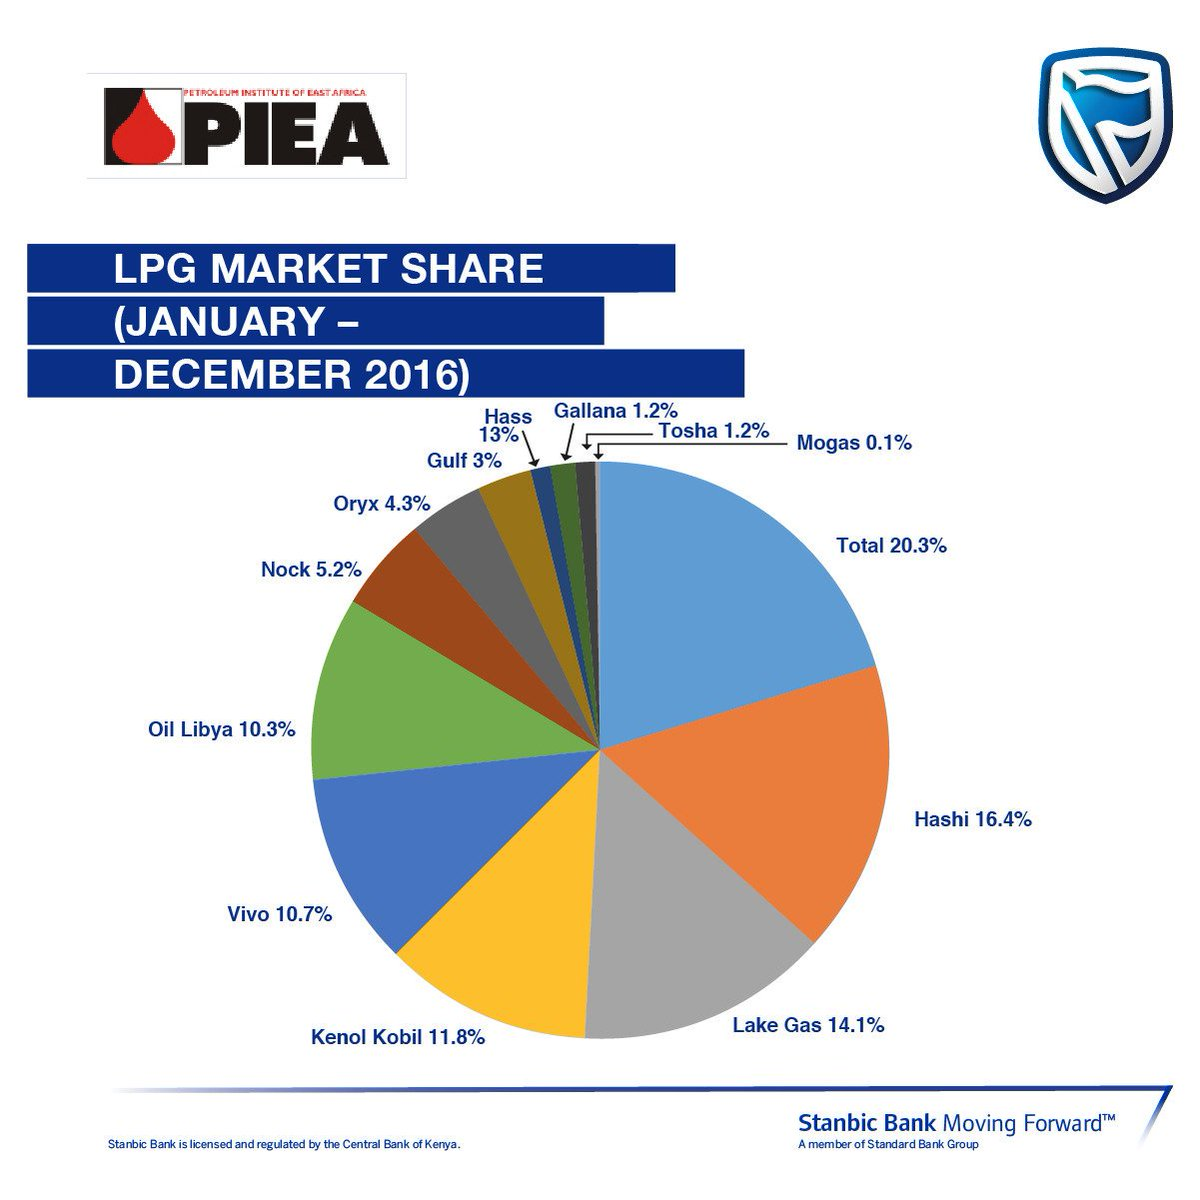 south african banking industry analysis 2017 pdf